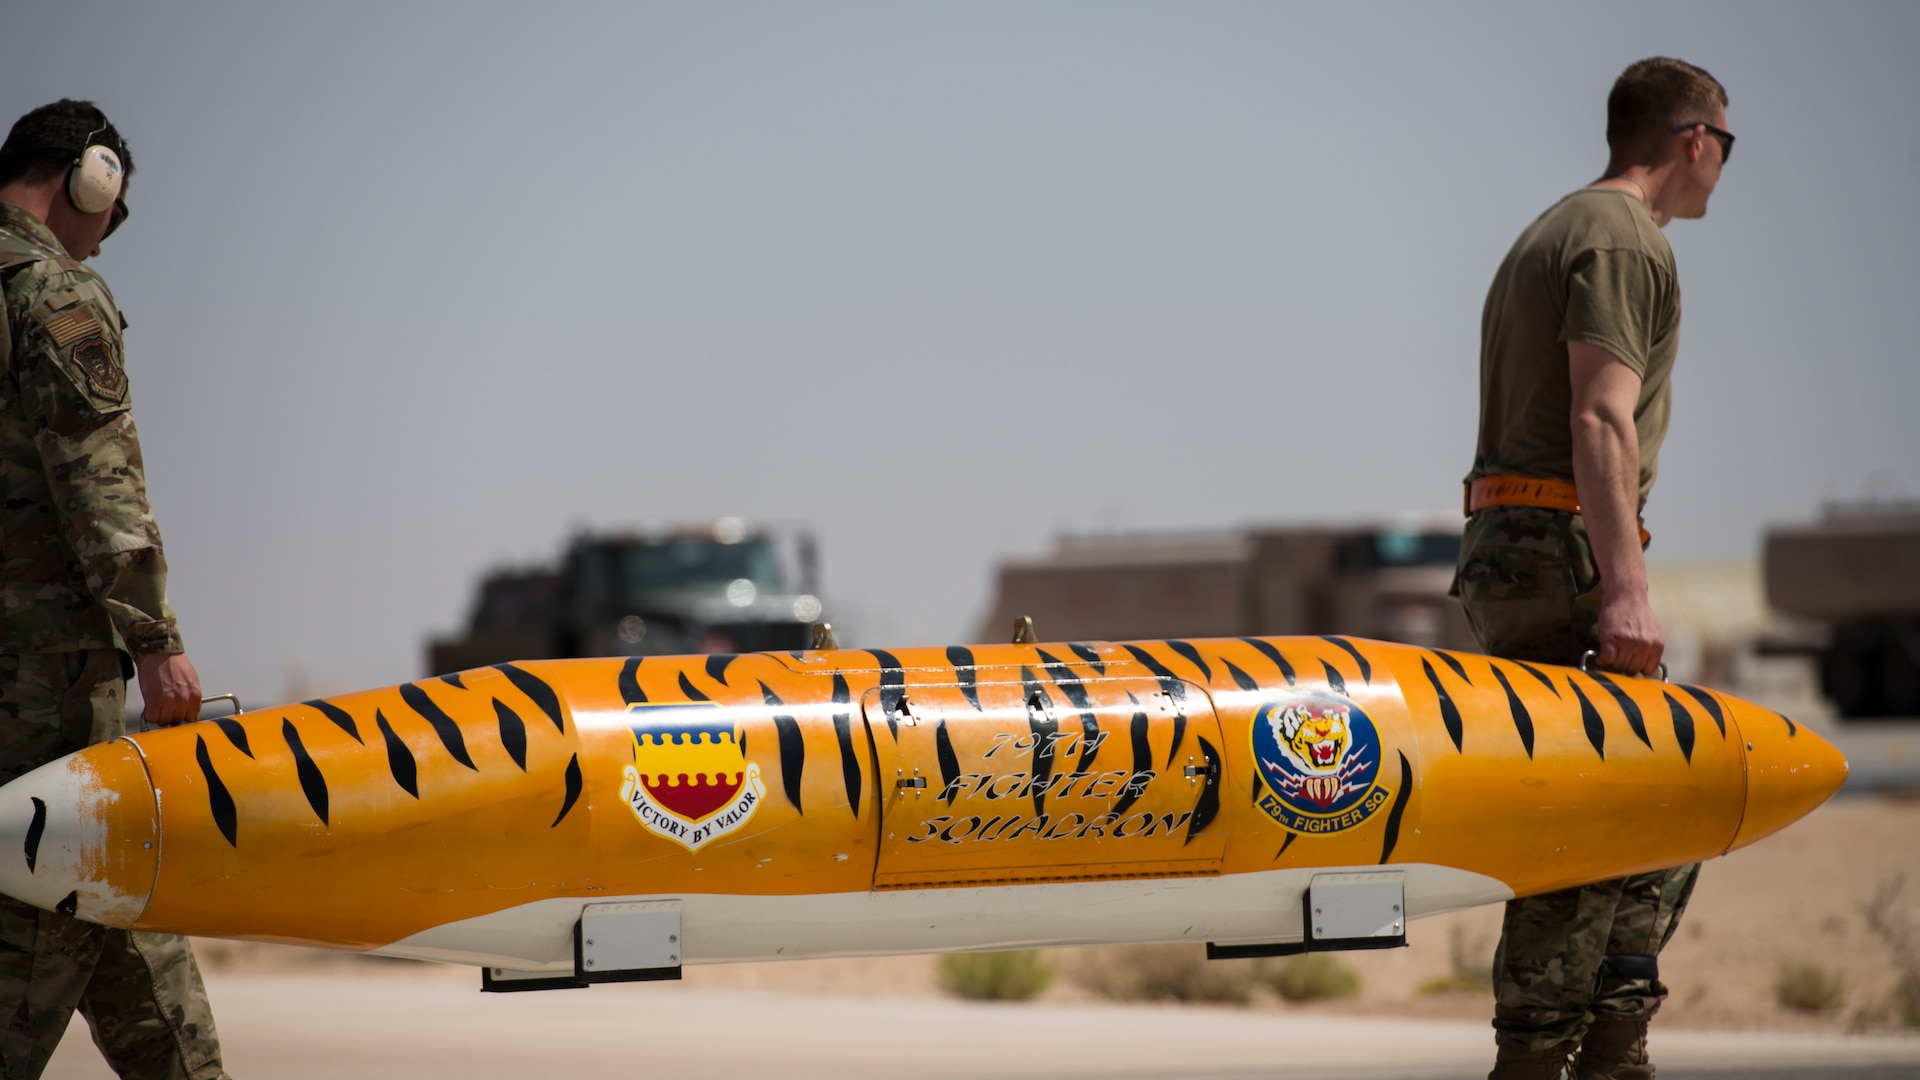 """Munitions systems specialists with the 380th Expeditionary Aircraft Maintenance Squadron transport a storage pod of a U.S. Air Force F-16 """"Viper"""" Fighting Falcon at an undisclosed location in the U.S. Central Command area of responsibility, Feb. 14, 2020."""